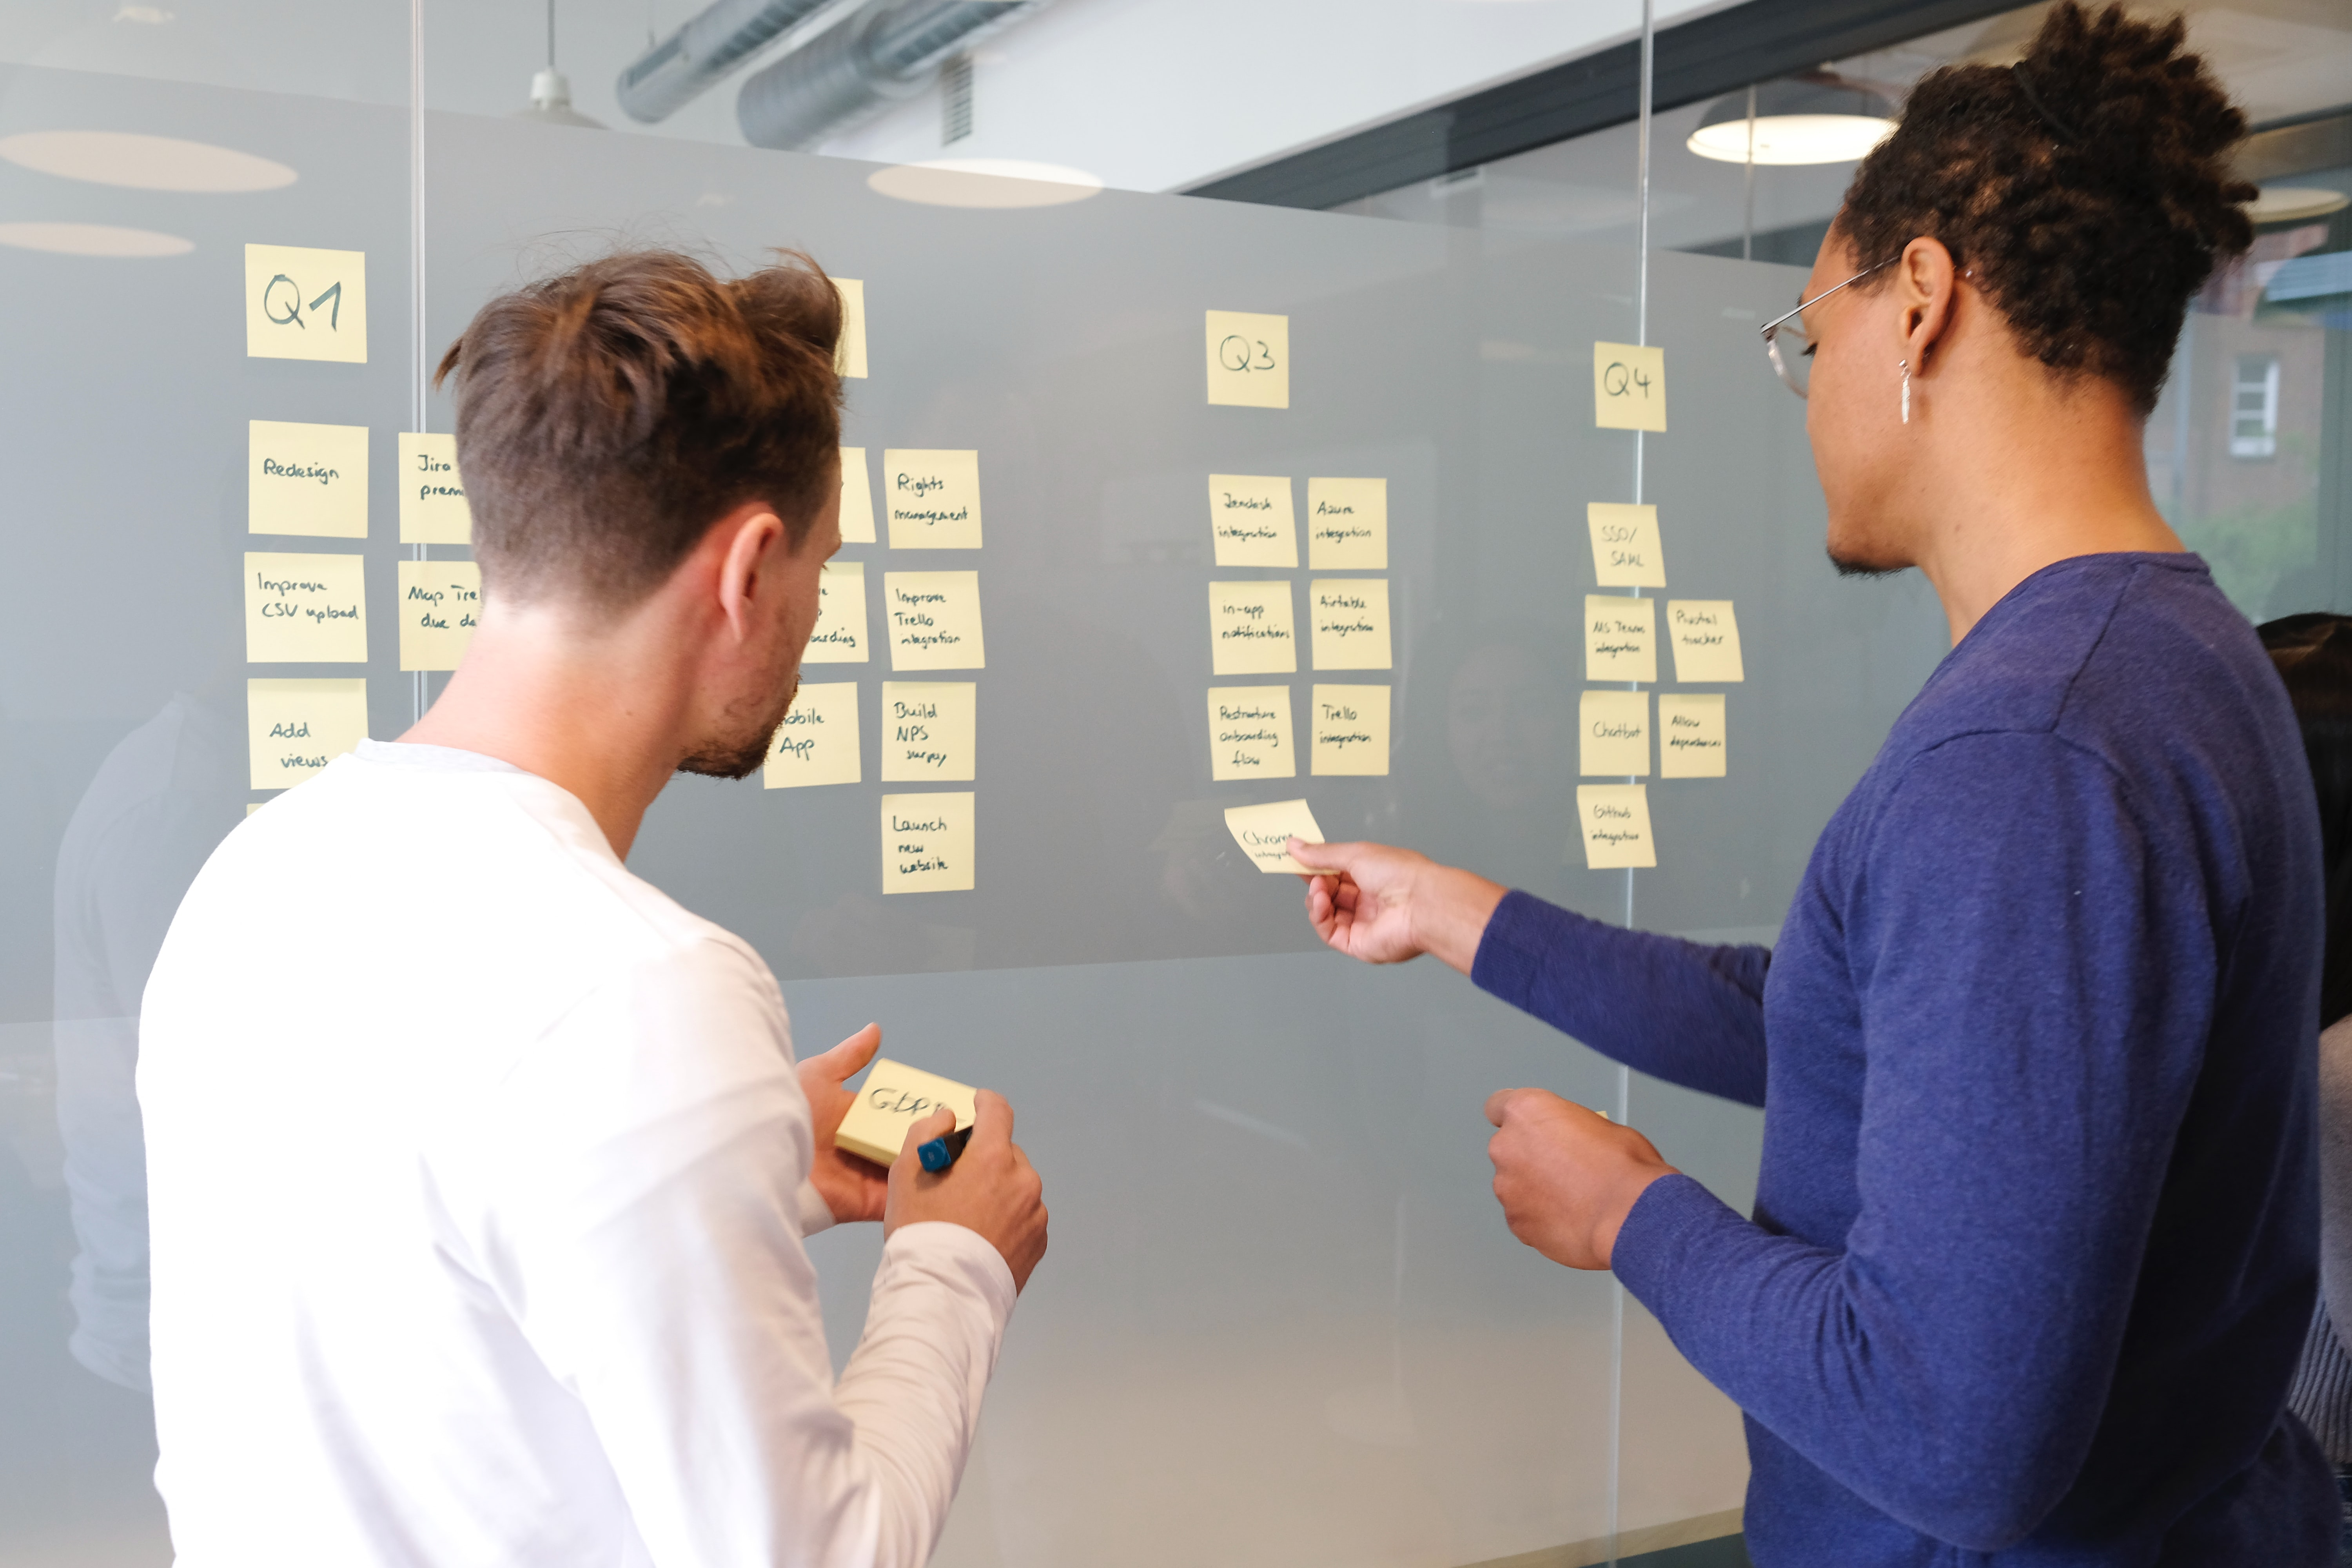 Two people are planning the project with sticky notes